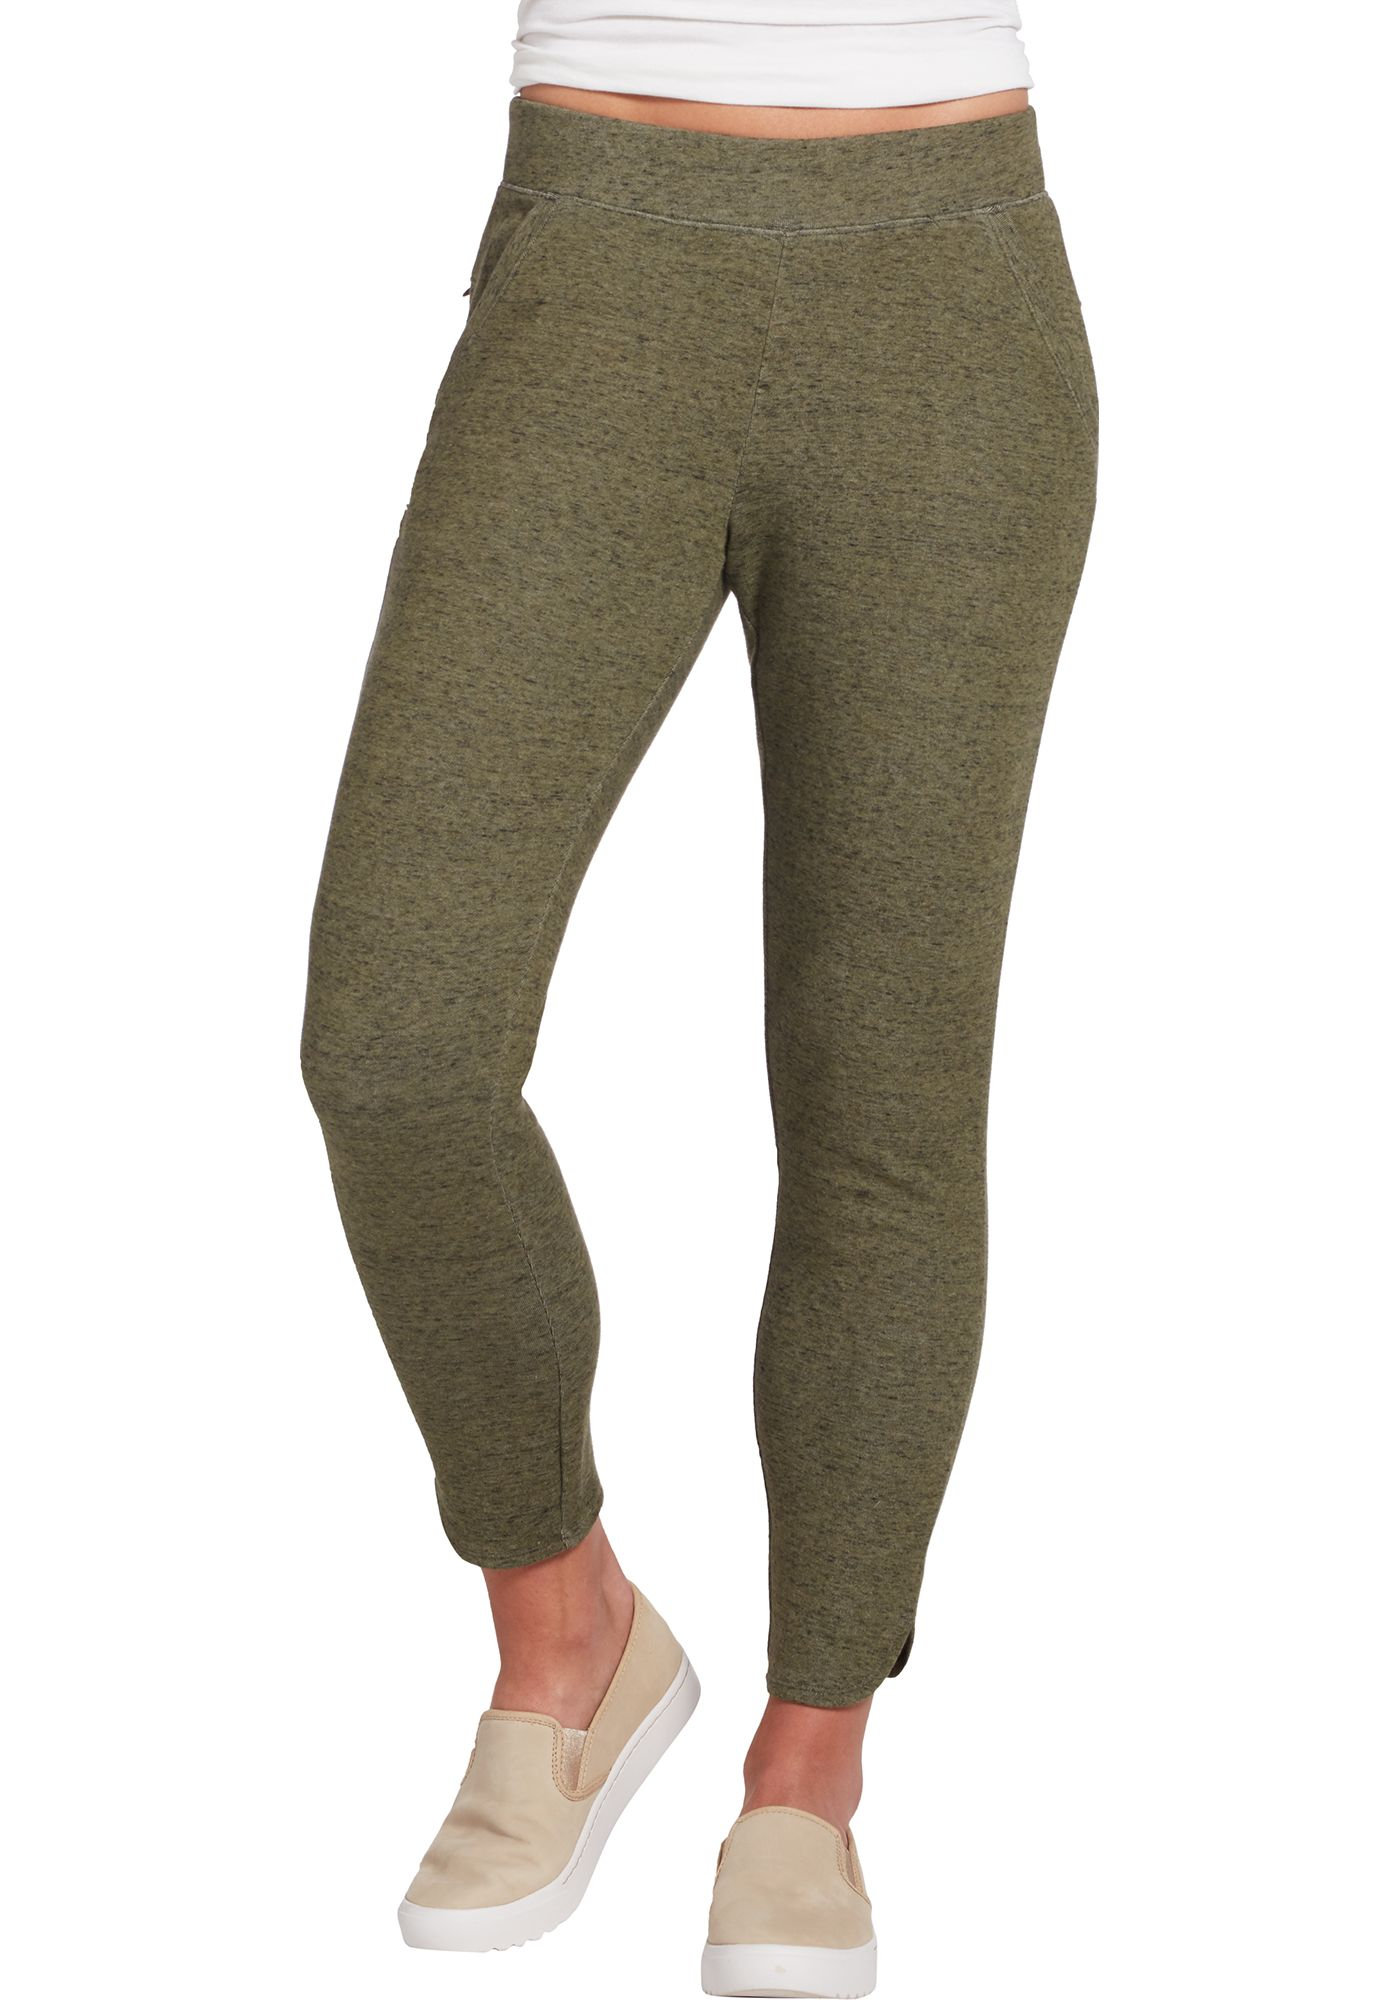 Alpine Design Women's Knit Travel Pants